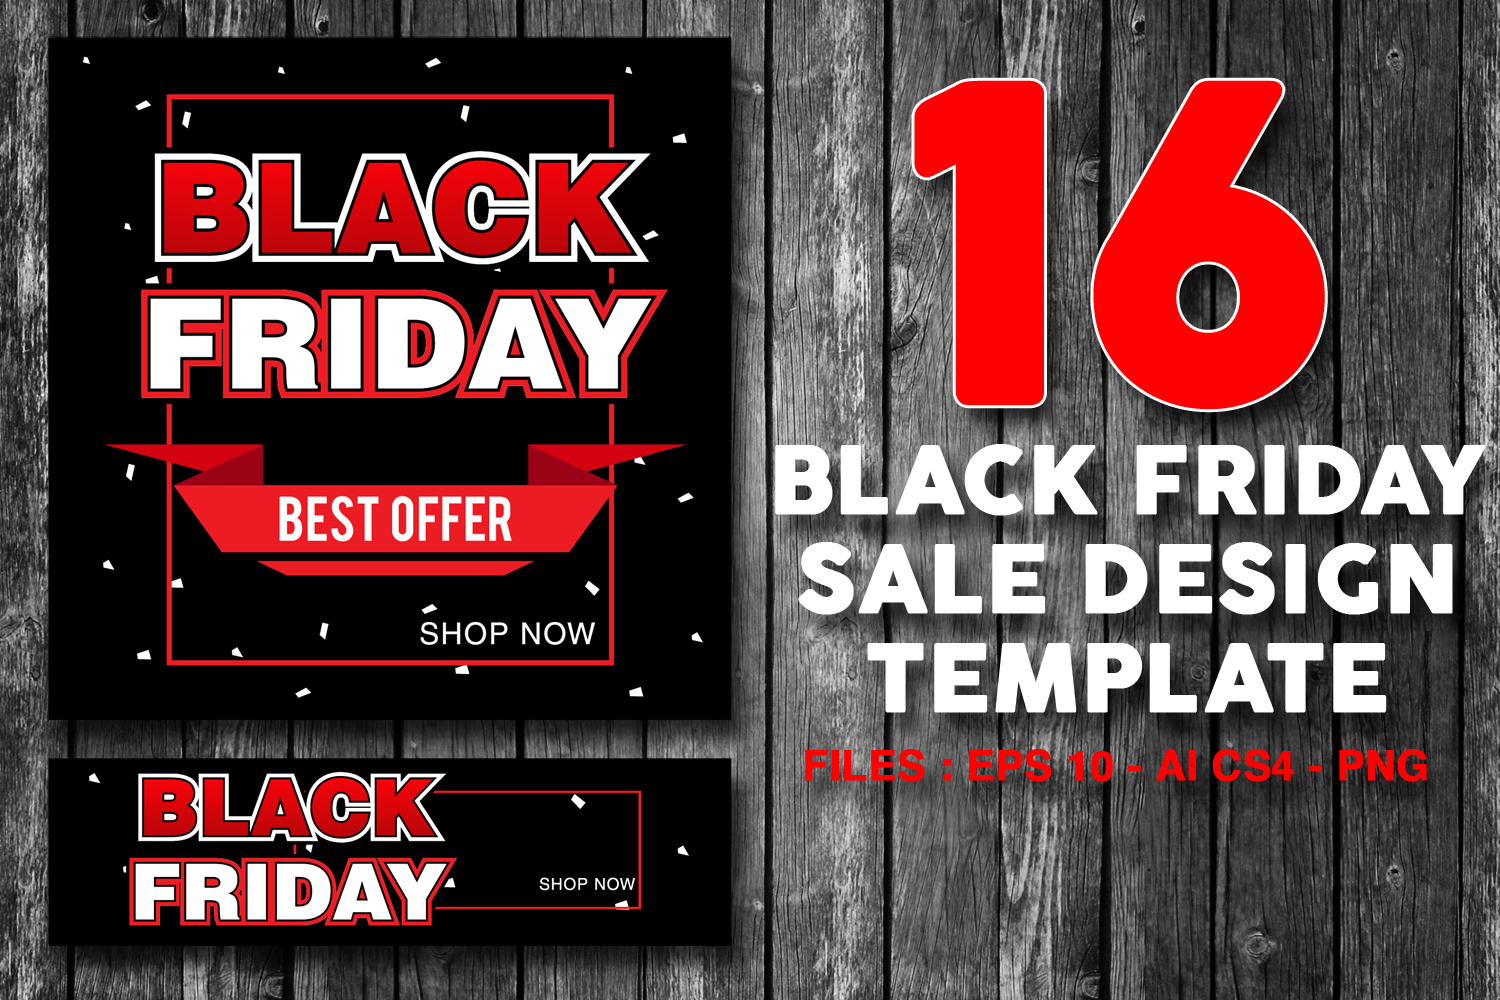 16 Black Friday Sale Banner for online shop, store example image 1